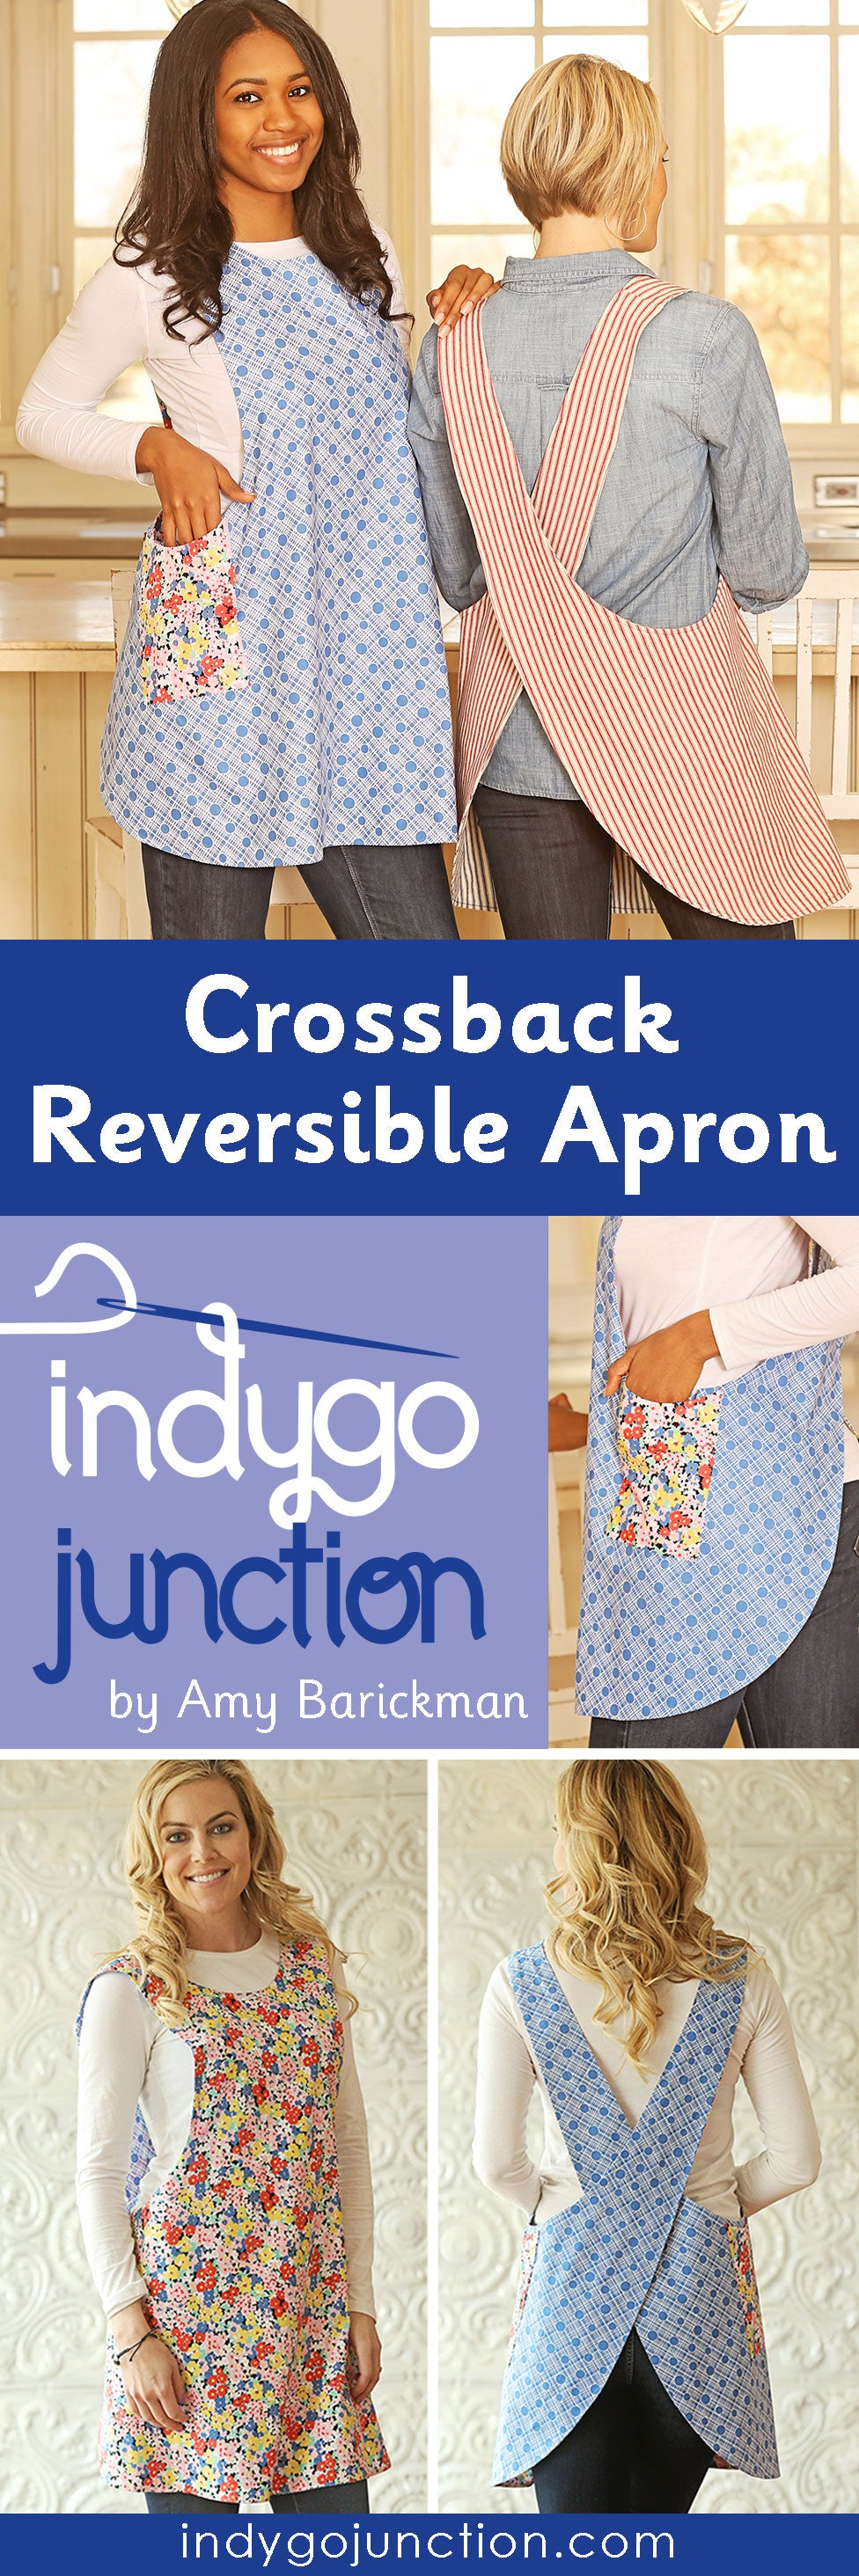 Indygo Junction's Reversible Crossback Apron pattern is a favorite for very good reasons!